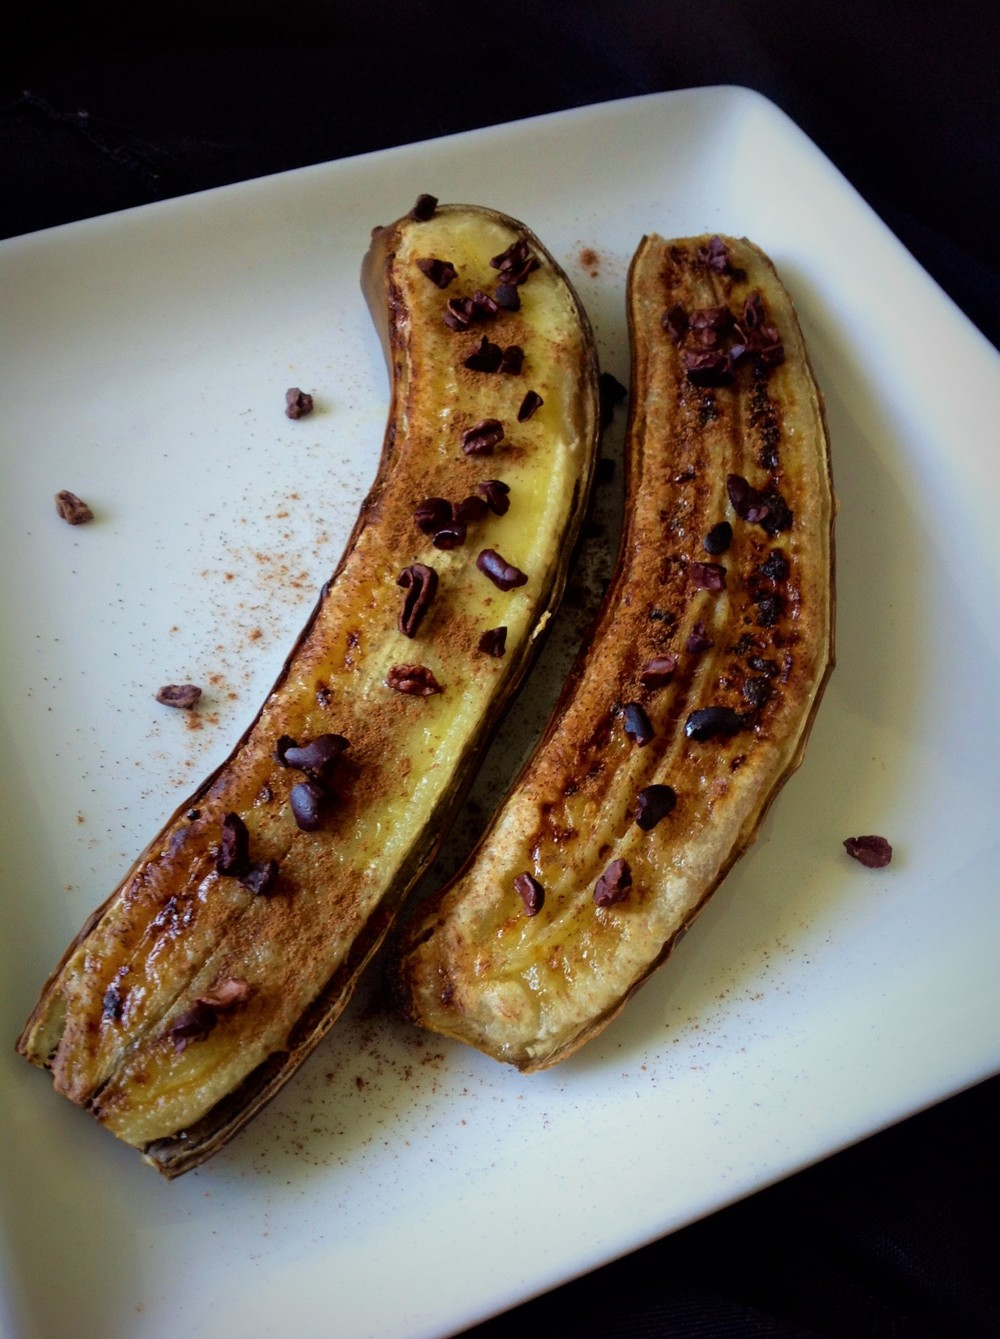 Broiled Bananas with Cocoa Nibs